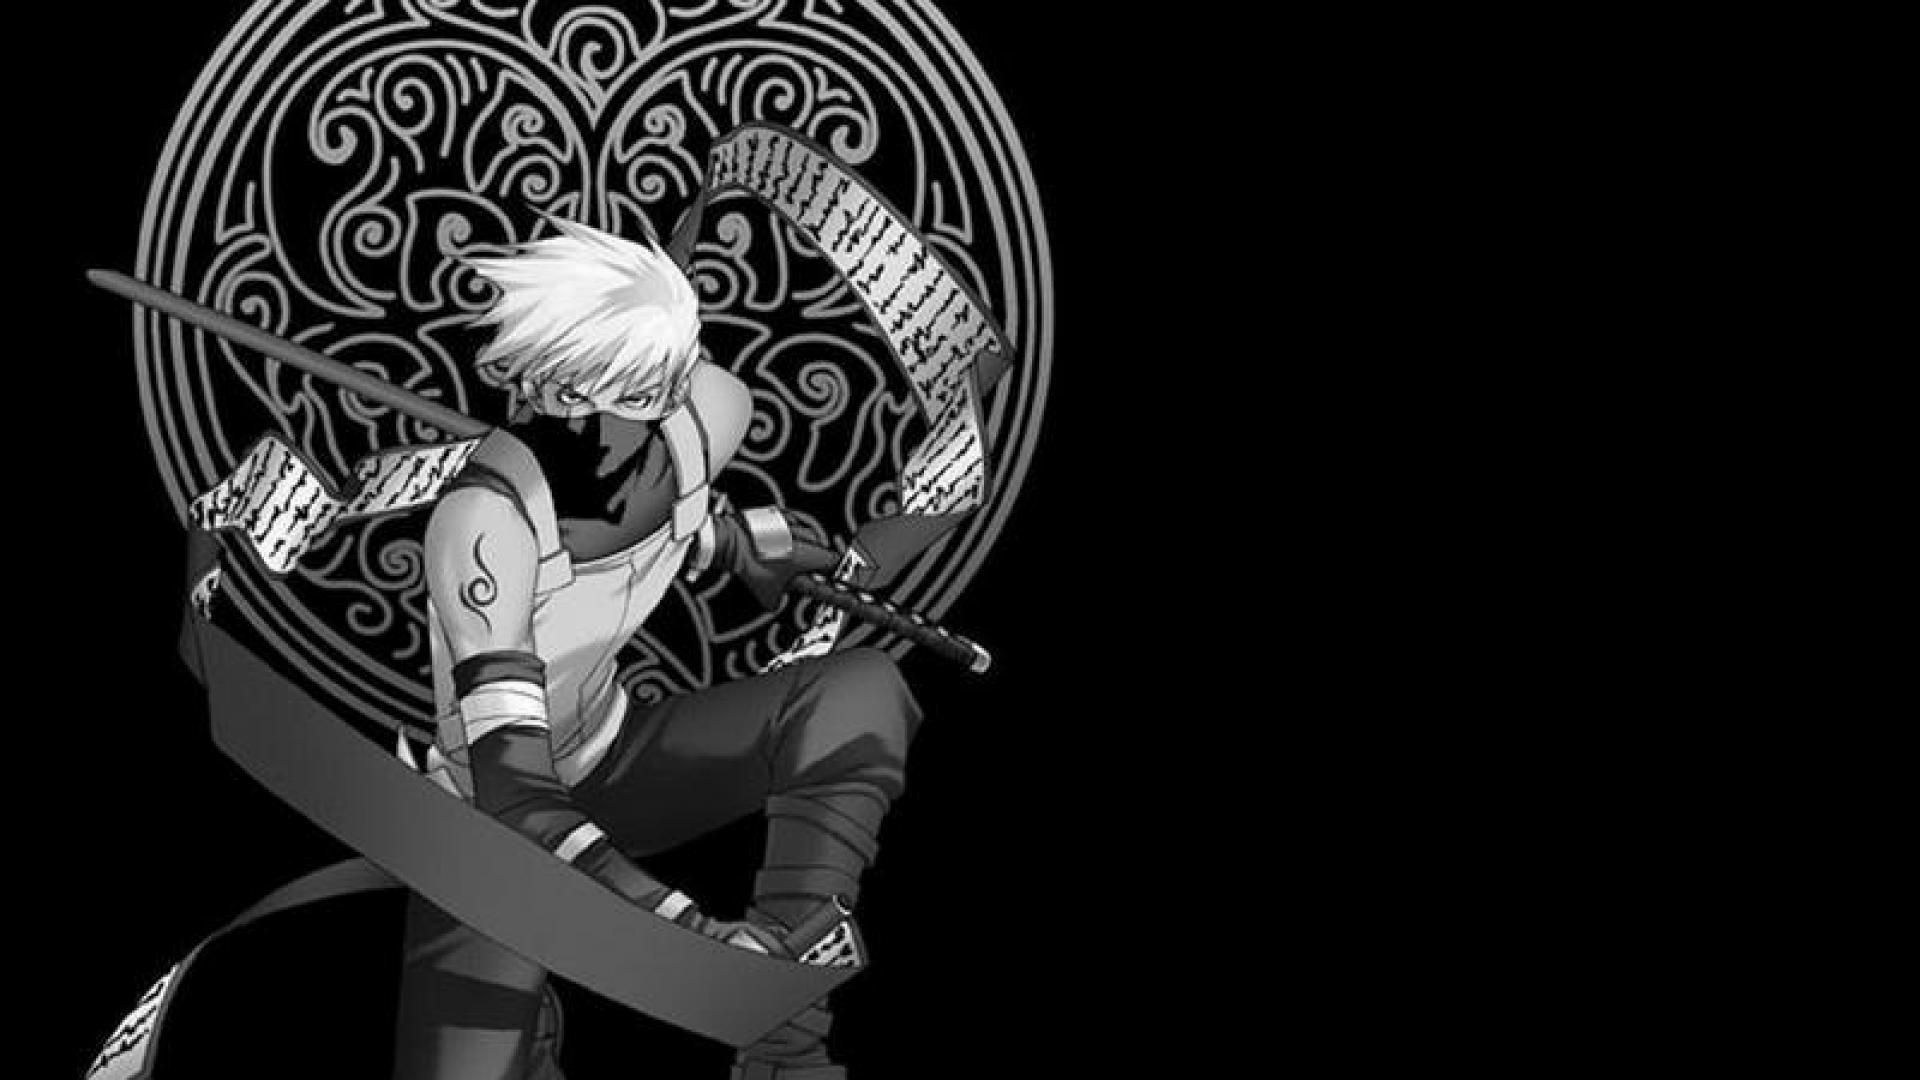 Kakashi hatake wallpaper high quality face terkuat naruto mati 1024 768 kakashi wallpaper 53 - Kakashi sensei wallpaper ...